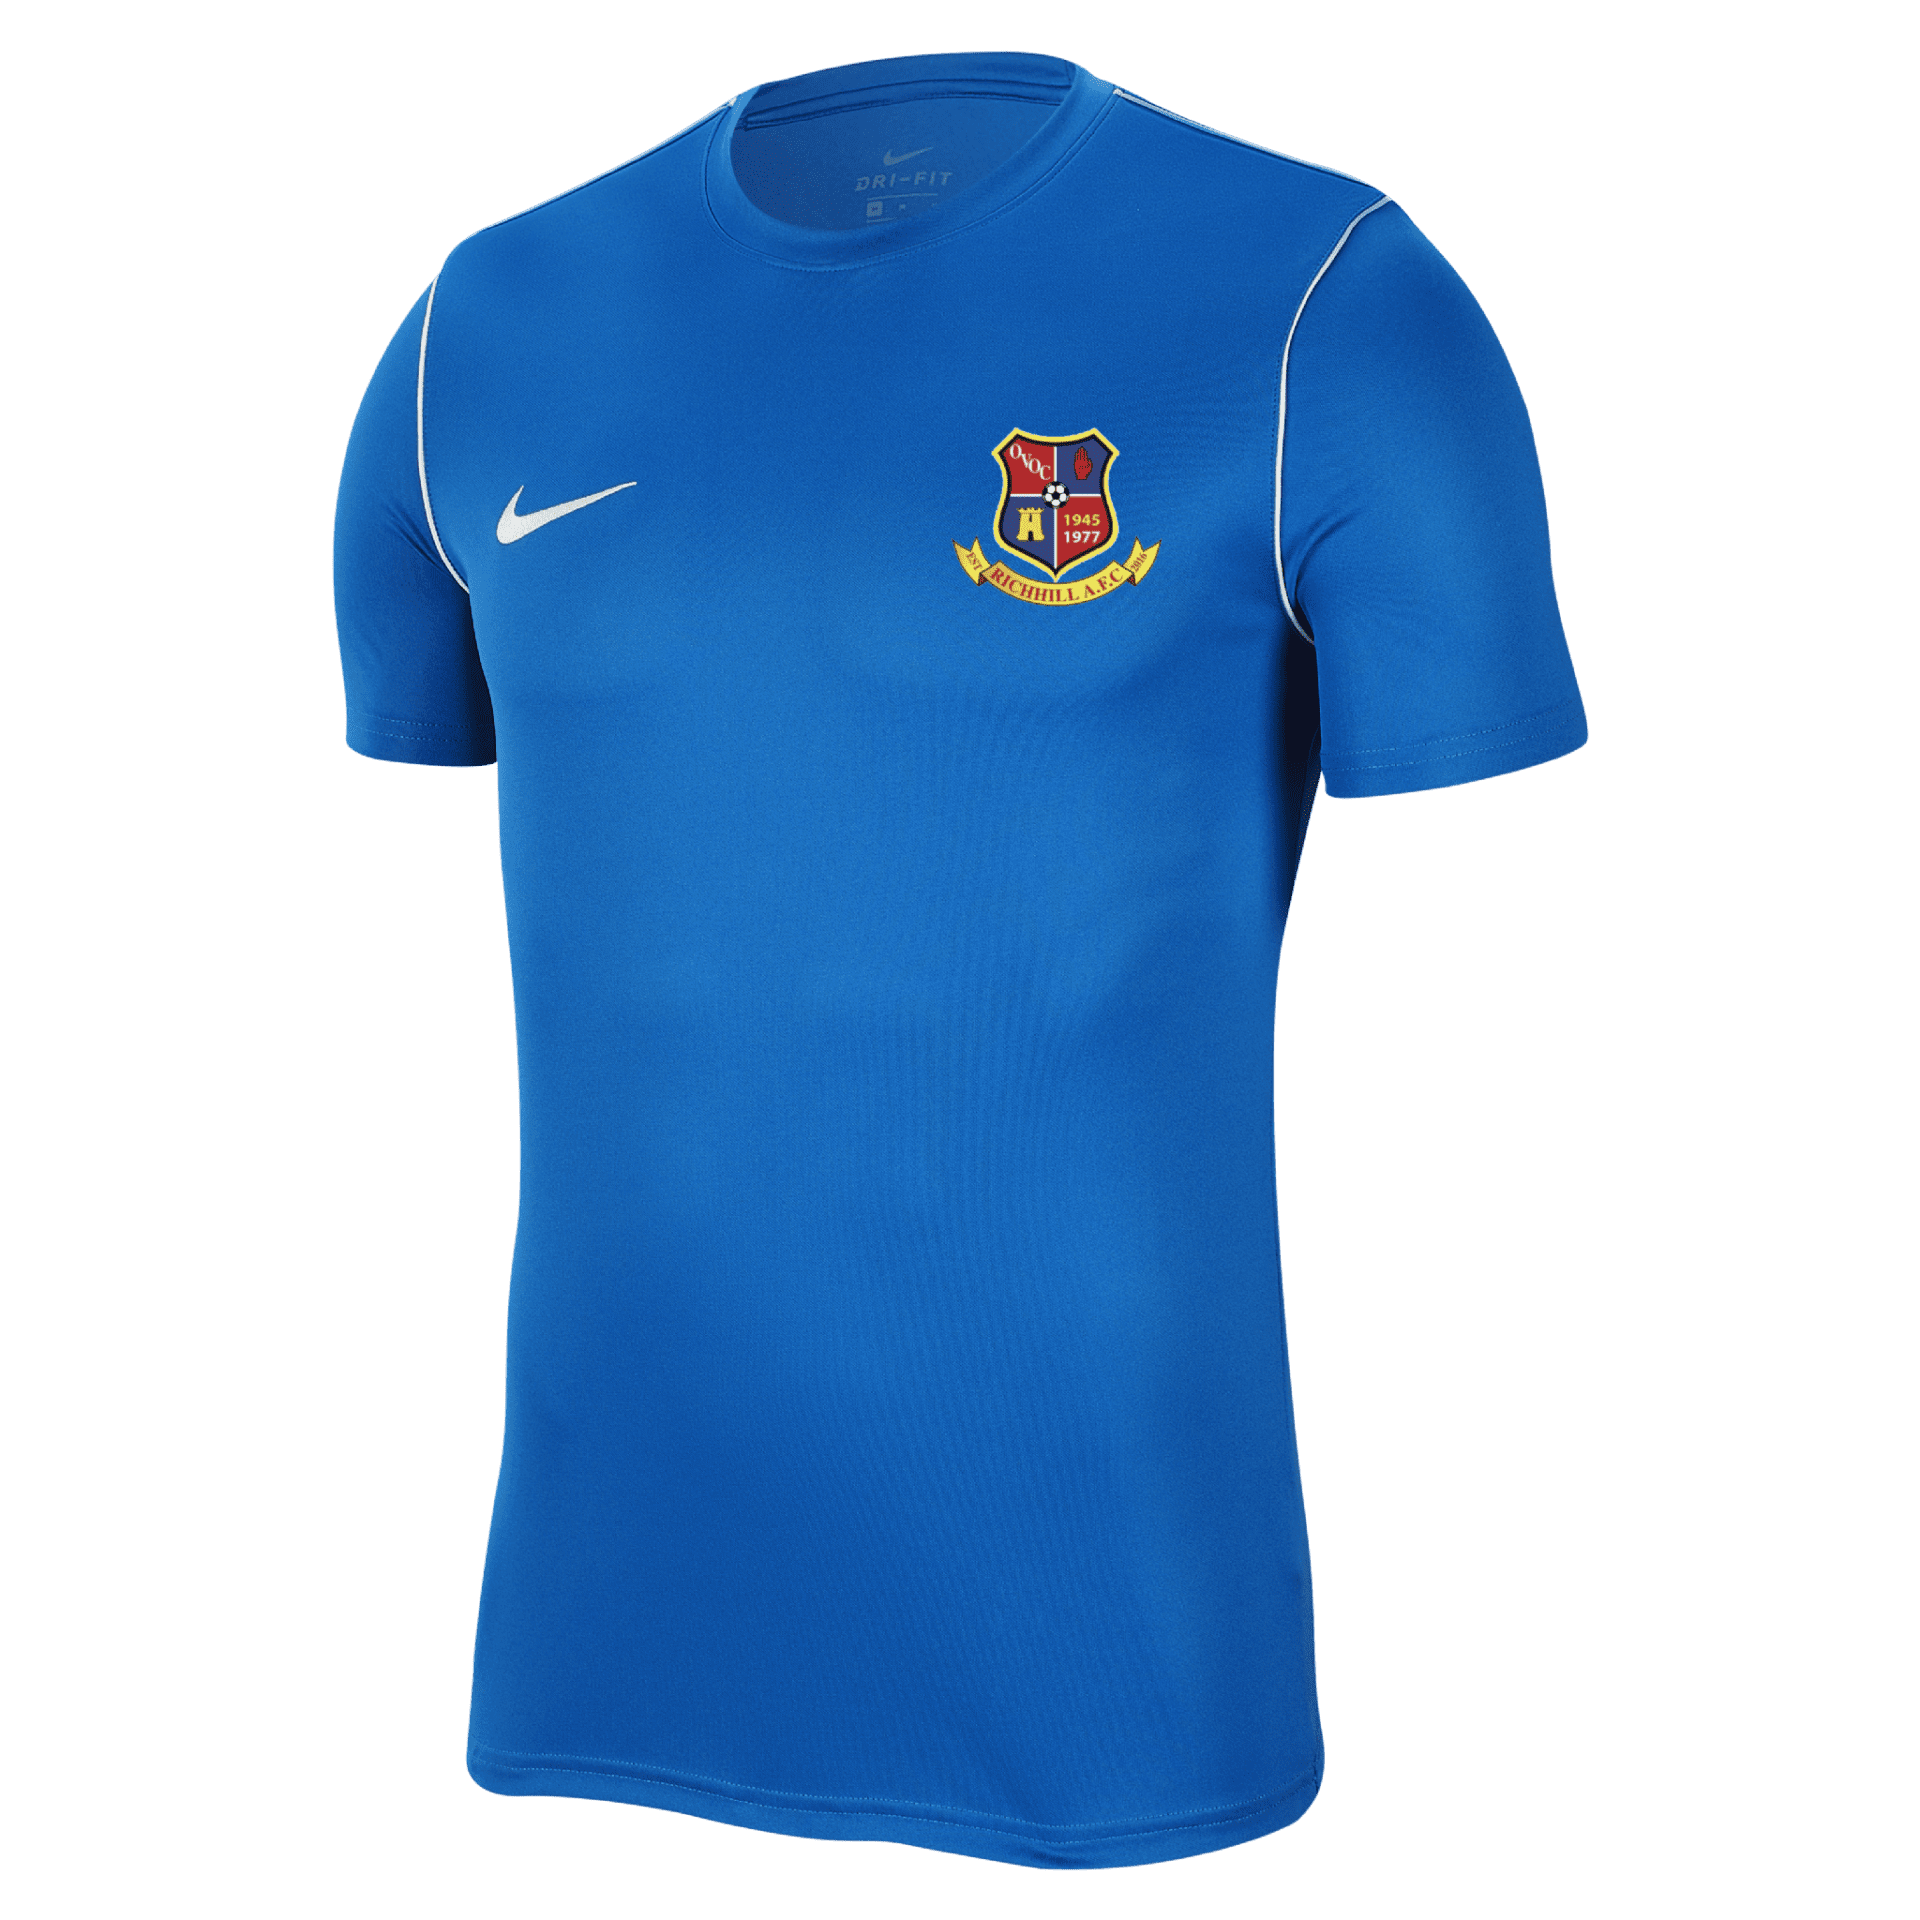 richhill park 20 training tee 32472 p